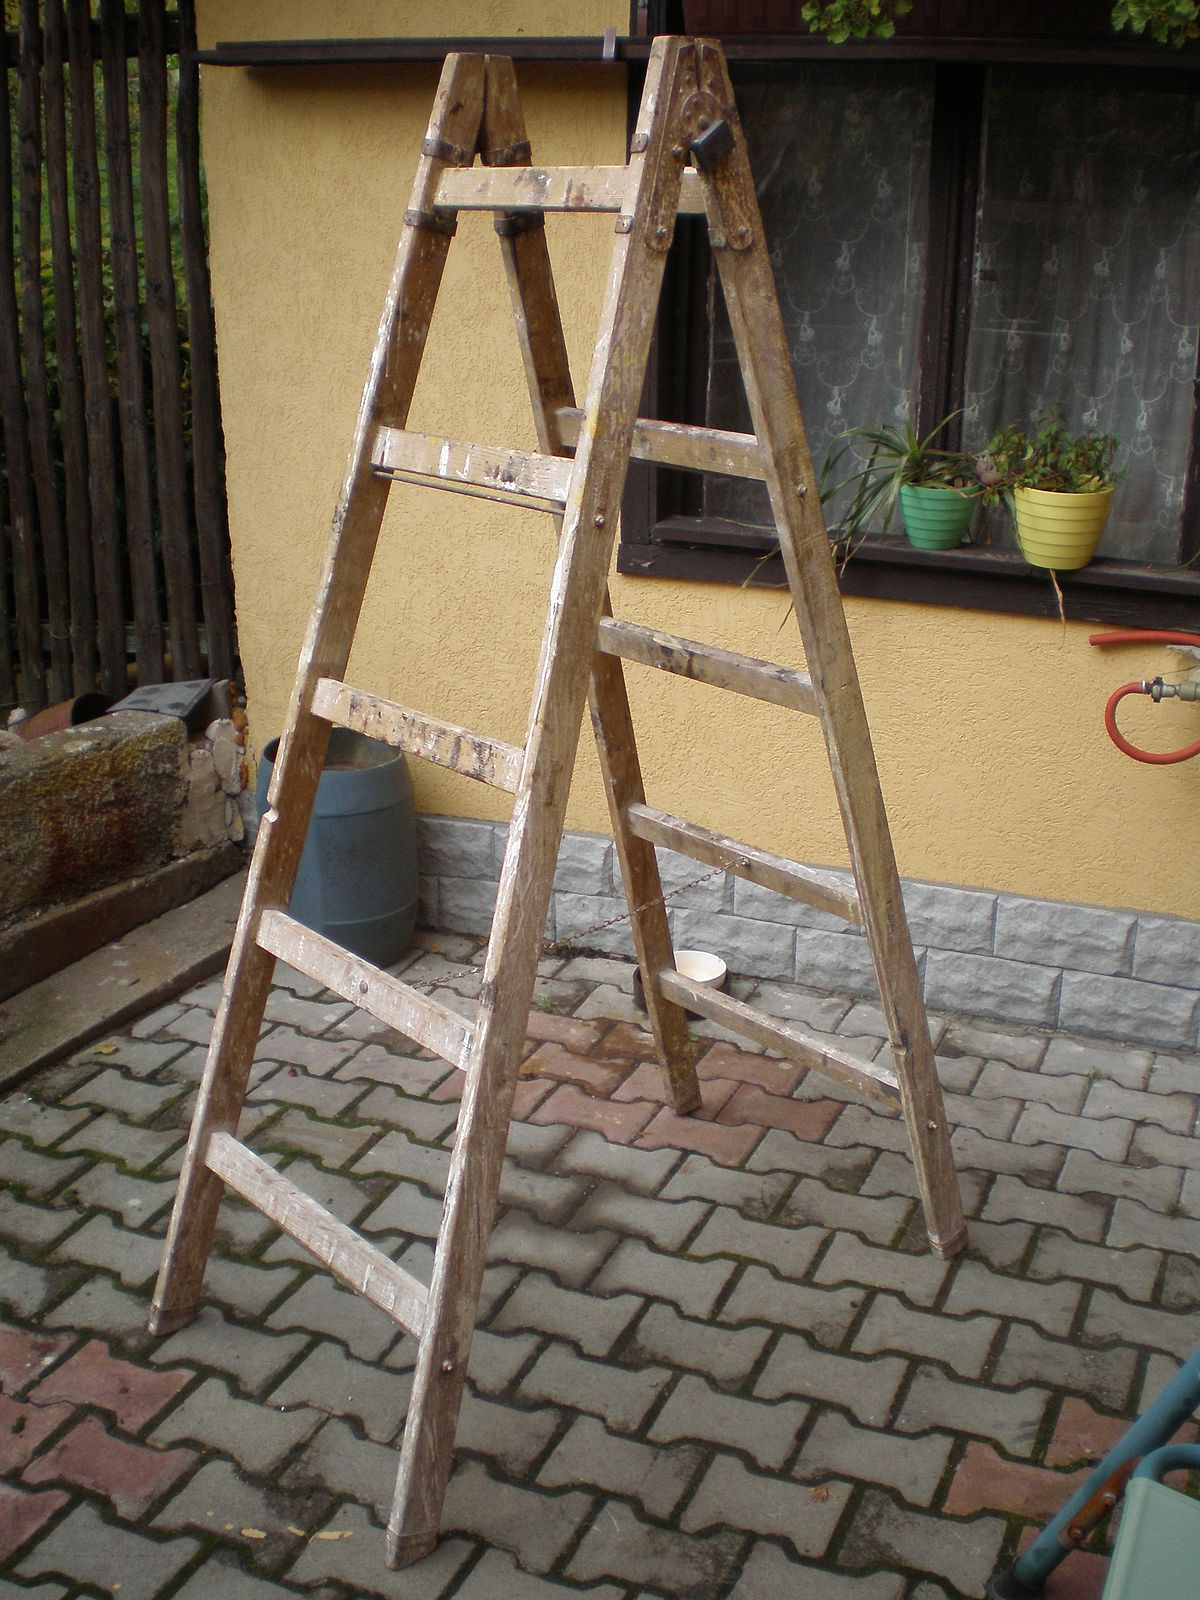 Can you receive compensation for your injuries from falling off a ladder? Ask NYC Ladder Accident Attorneys for help.